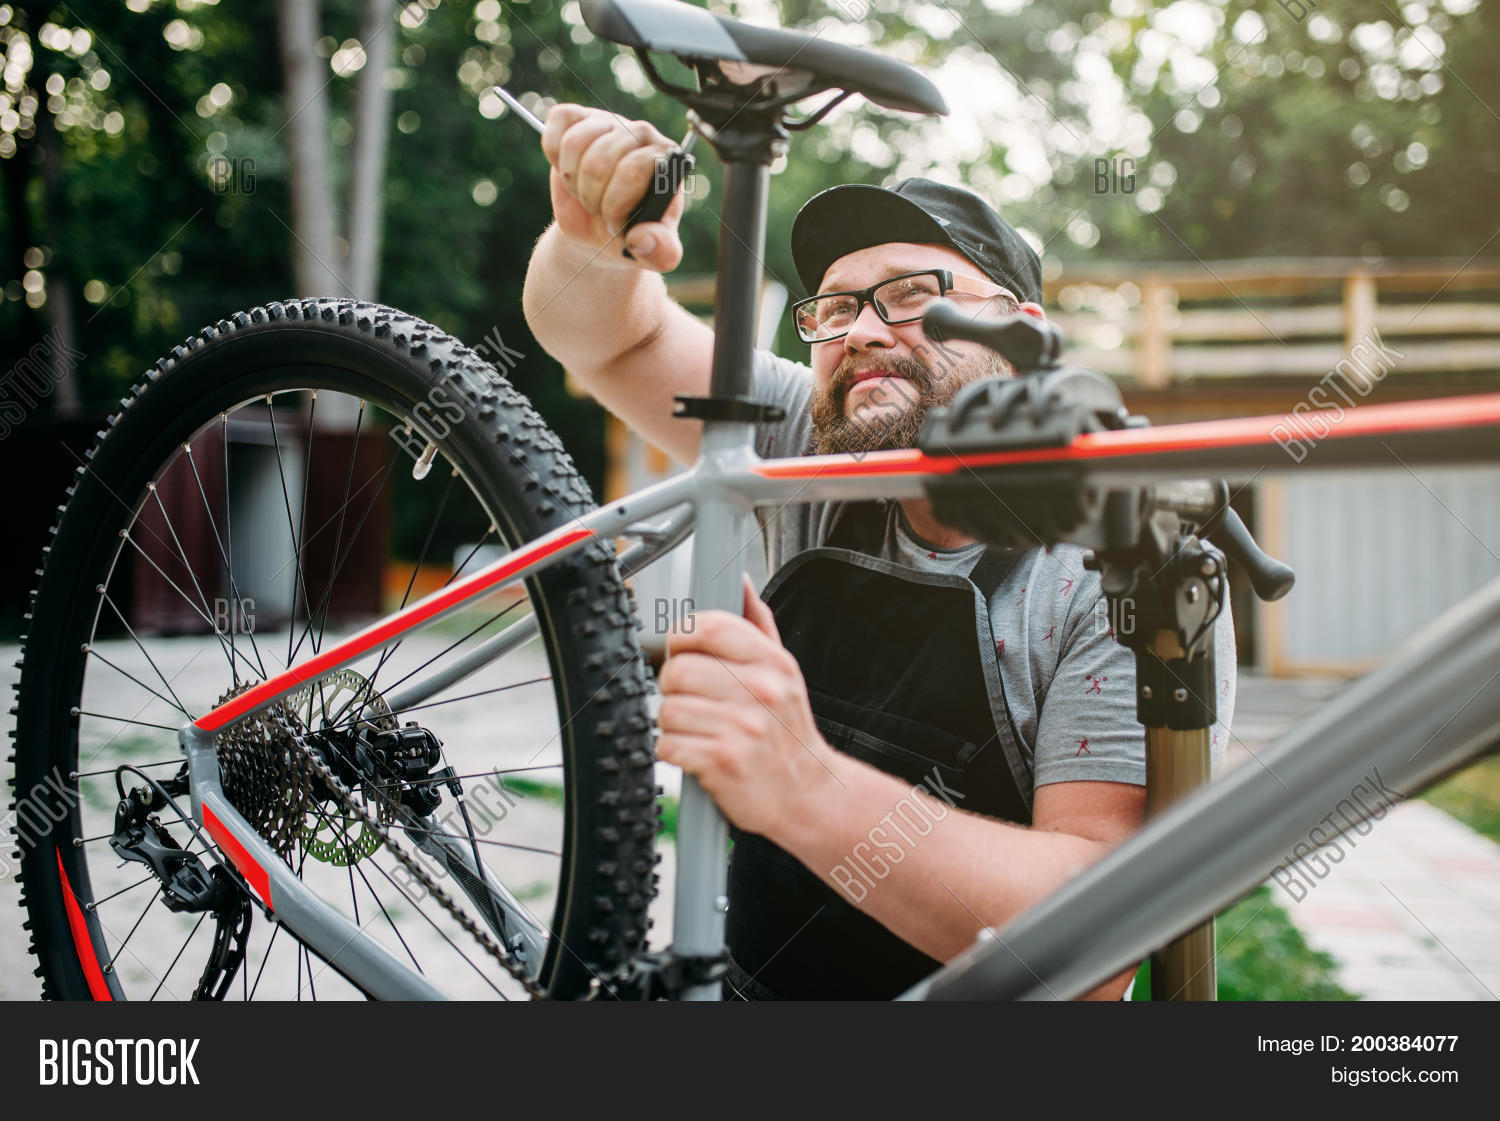 adjust,bearded,bicycle,bicycling,bike,biker,biking,broken,business,chain,cycle,cyclist,equipment,fix,fixing,gear,glasses,hand,job,maintenance,male,man,master,mechanic,occupation,outdoor,person,profession,professional,repair,repairer,repairman,seat,service,serviceman,shop,sport,store,technician,tire,tool,tyre,wheel,work,worker,workshop,wrench